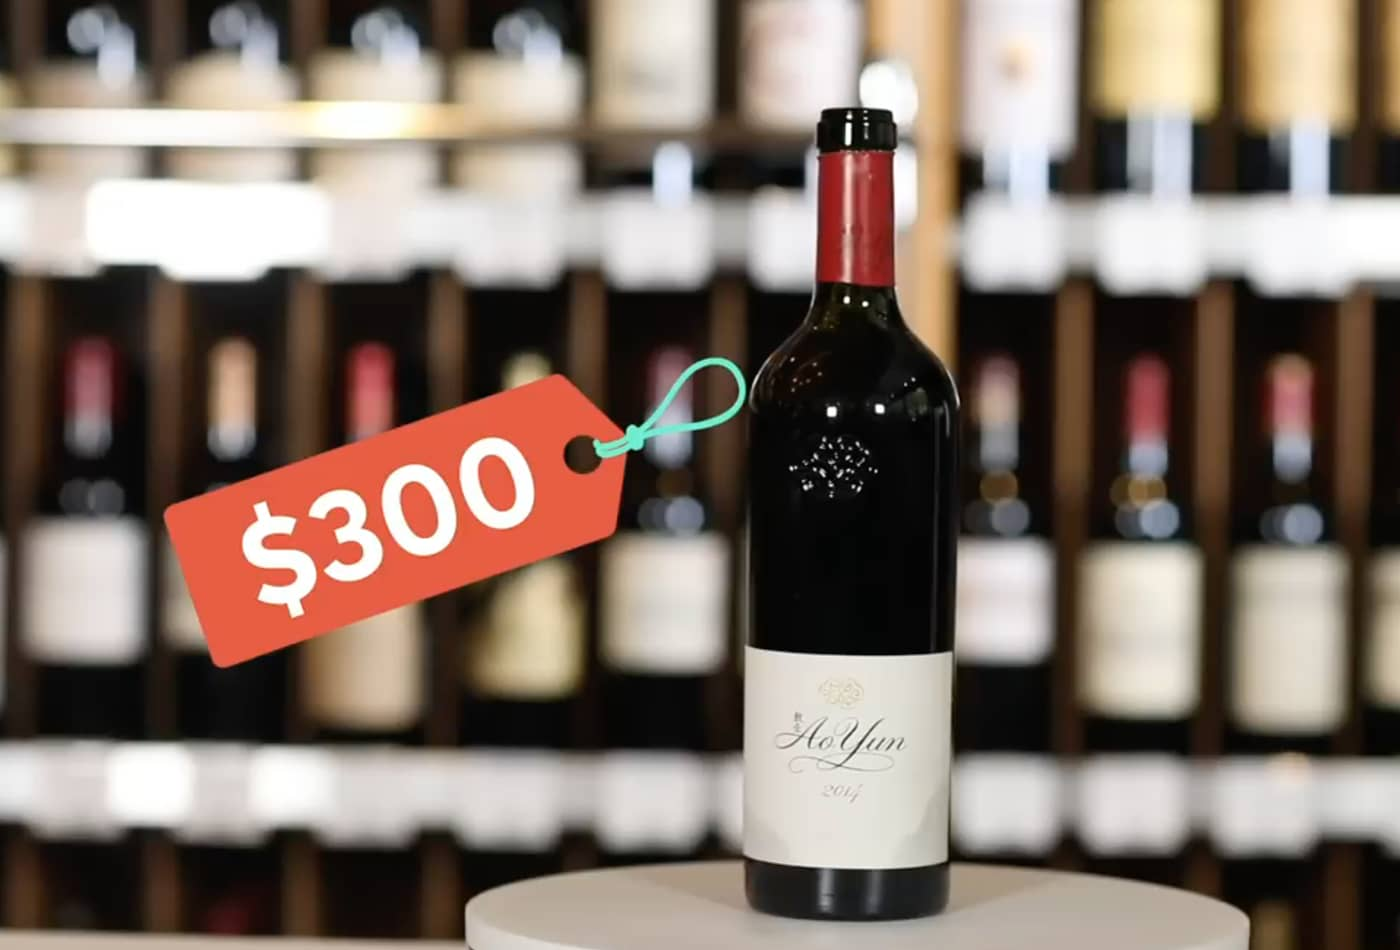 Is this $300 bottle of Chinese wine worth the money?